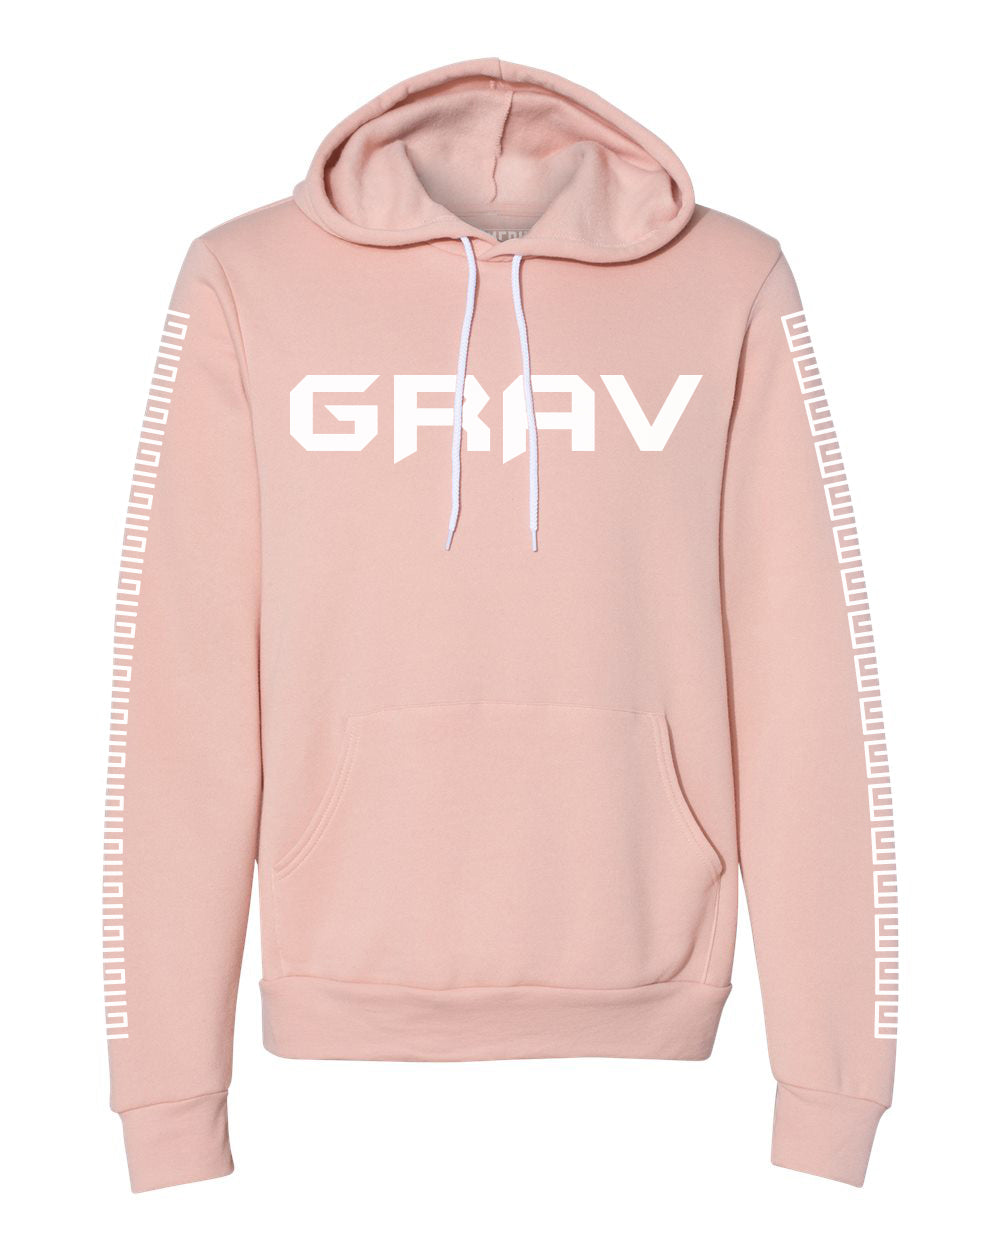 Gravitated Equations GRAV Hoodie Sweatshirt Clothing